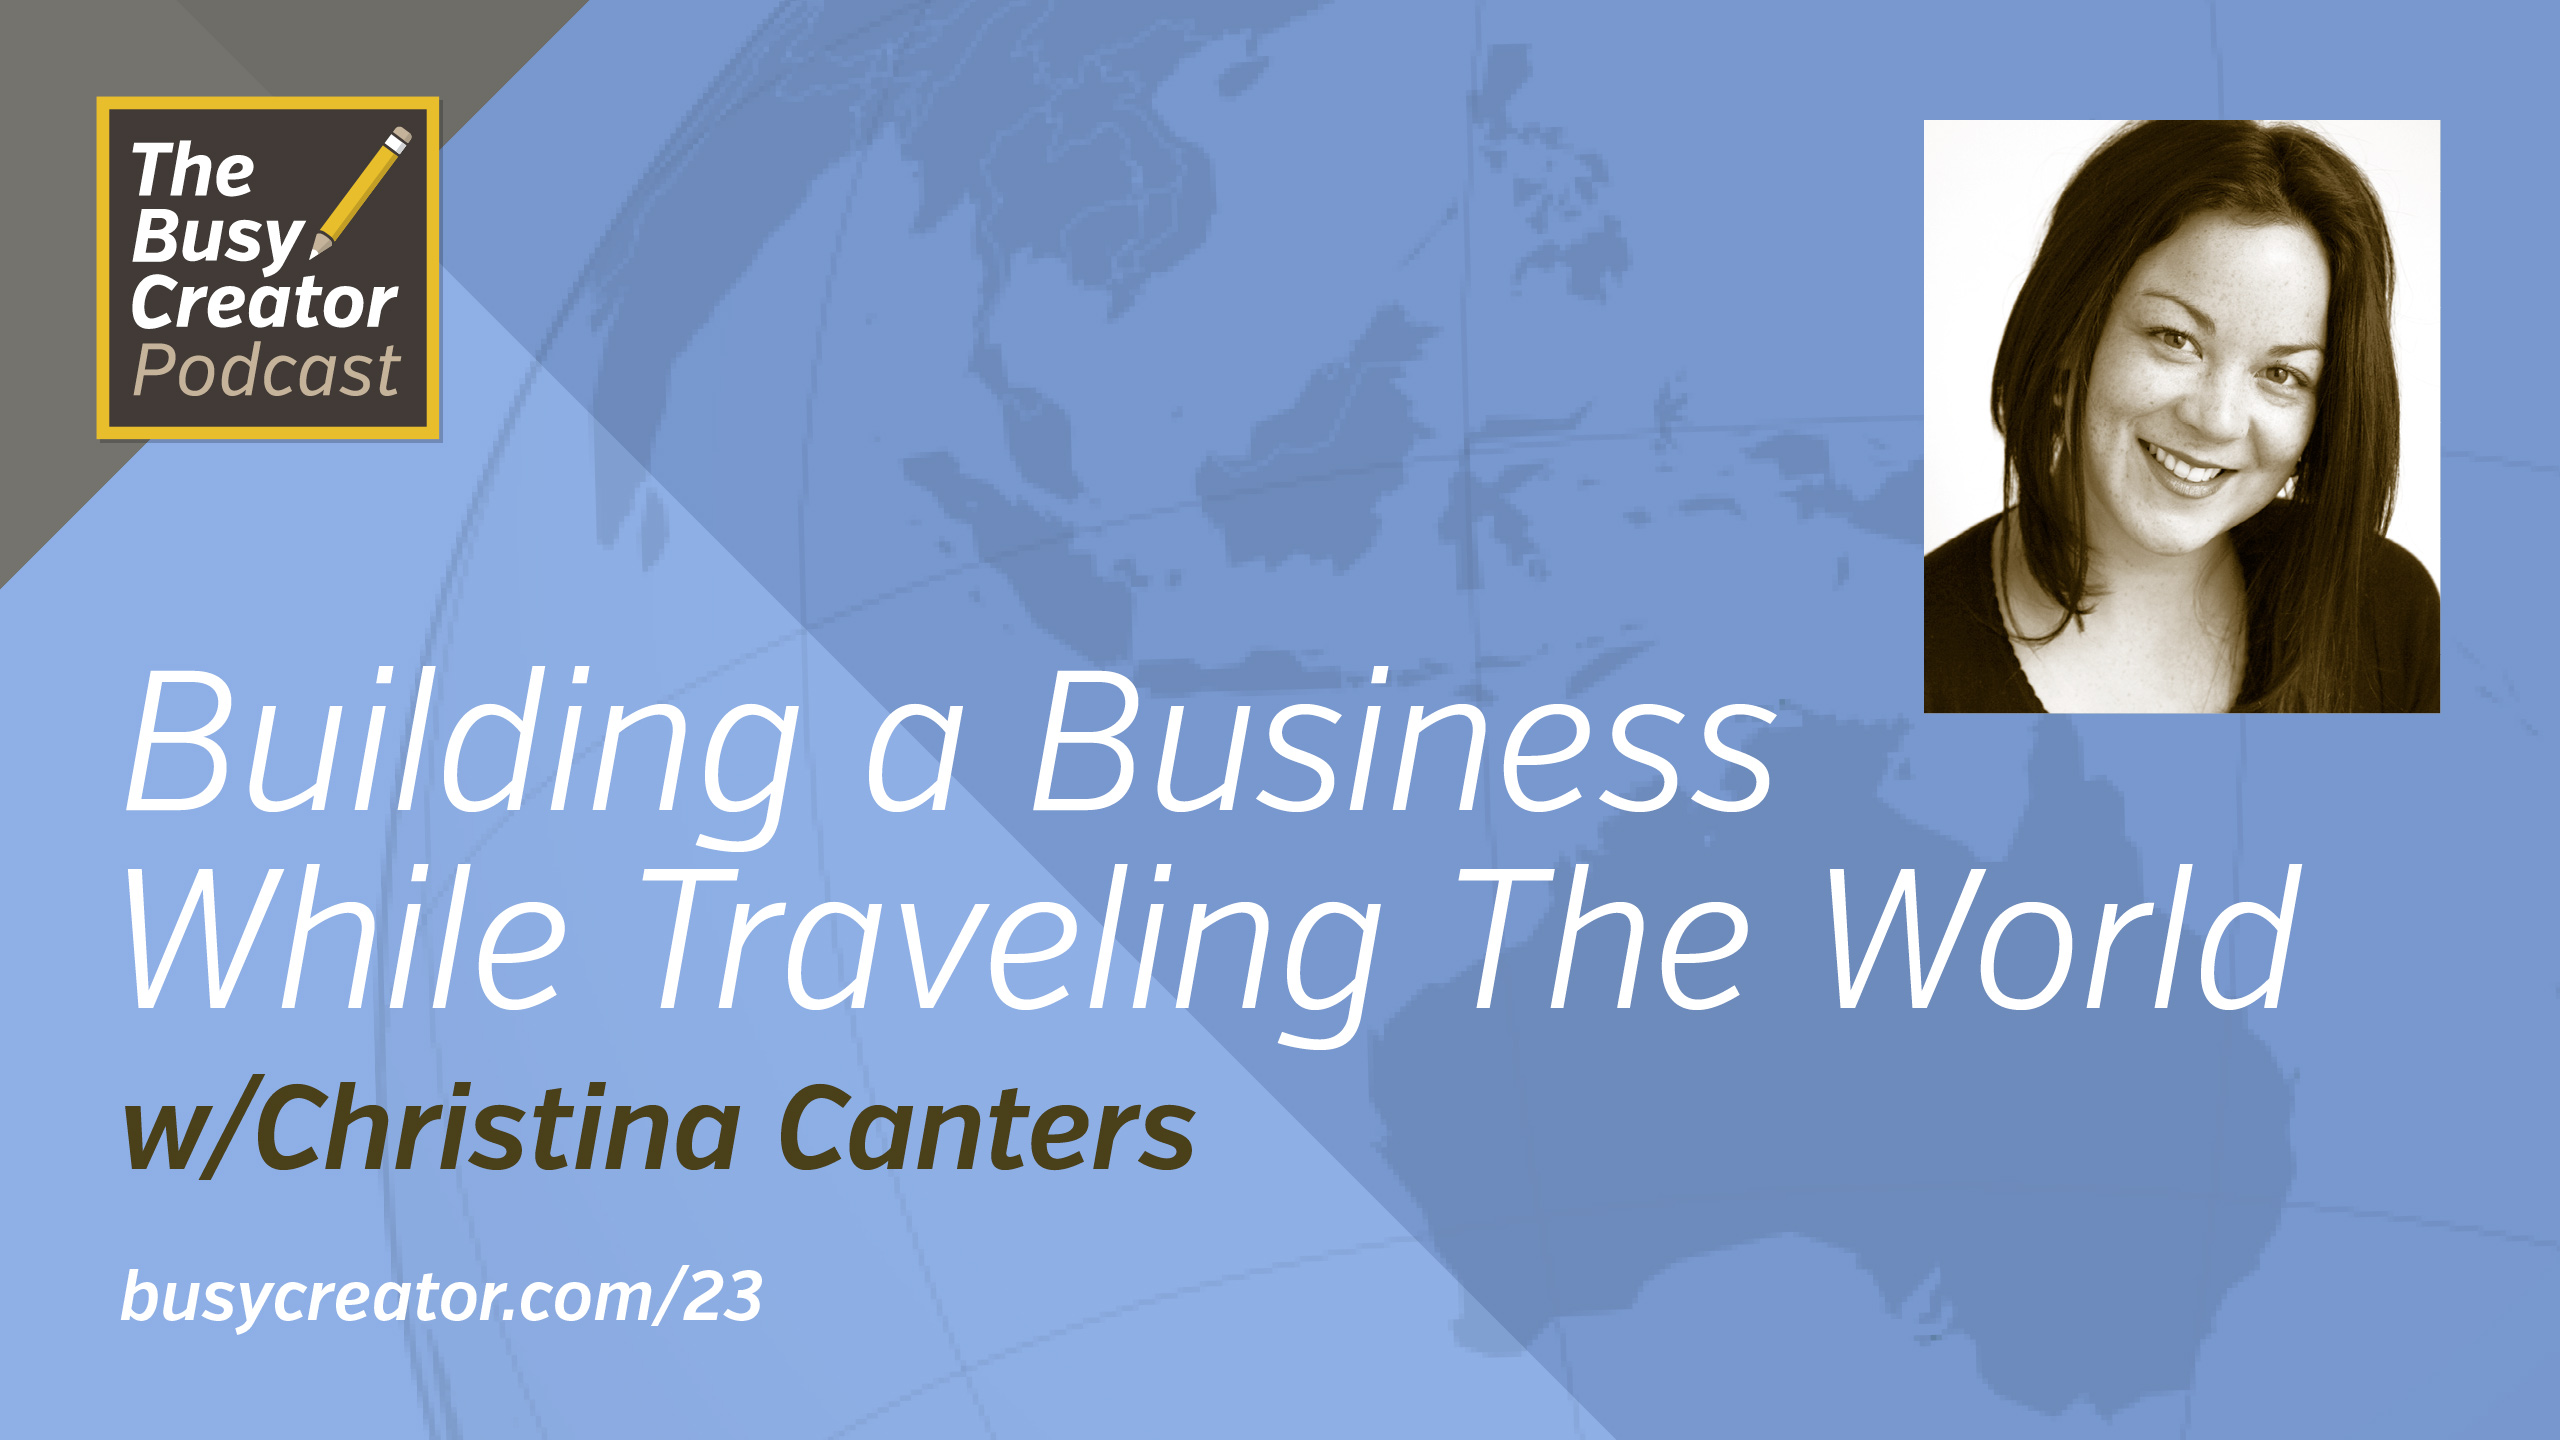 Building an Online Business While Traveling The World, with Christina Canters